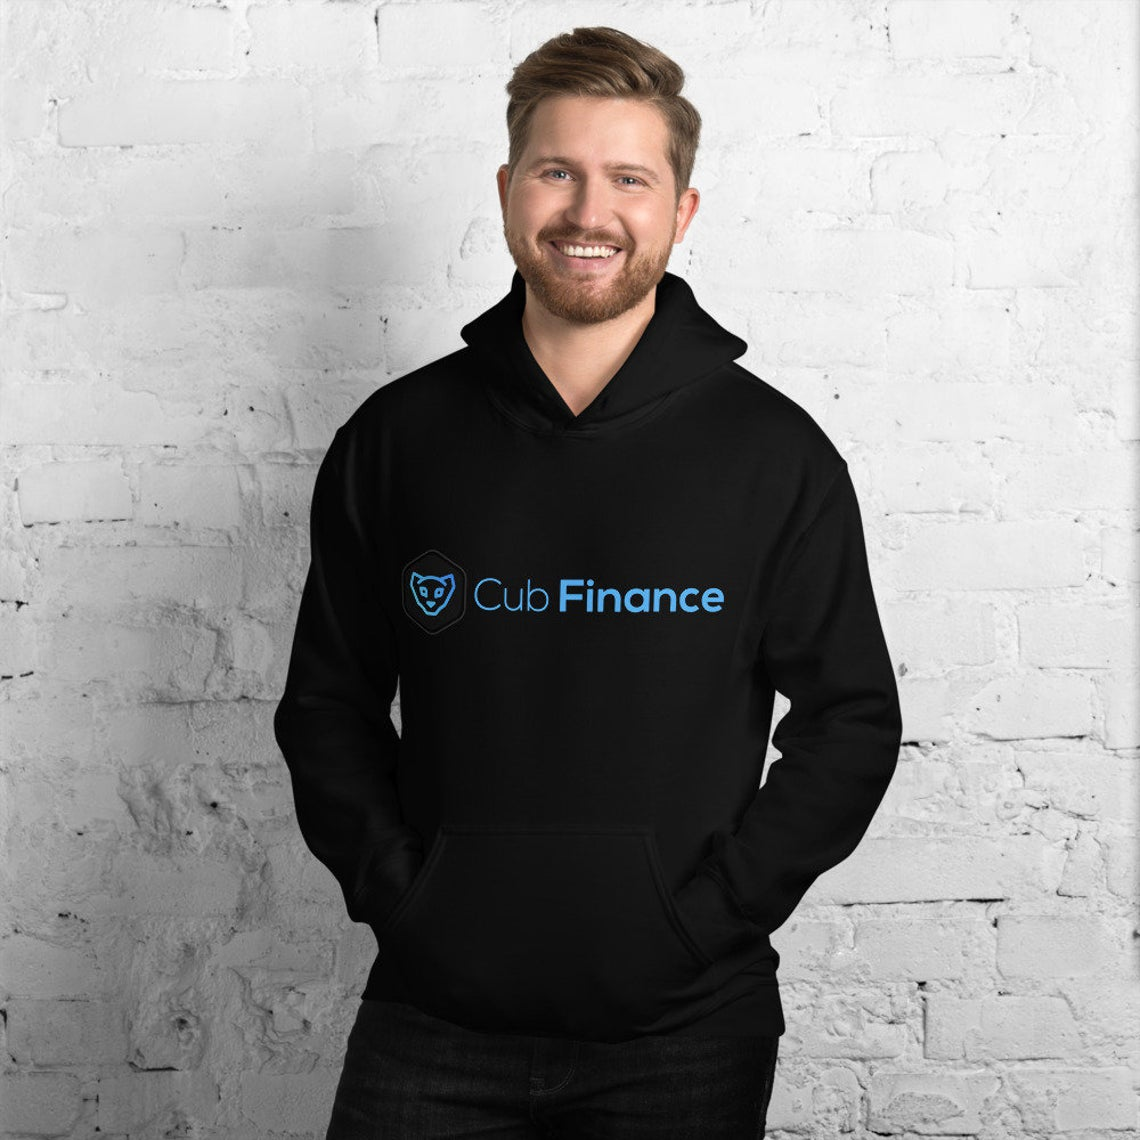 CubFinance CUB Unisex Hoodie - LeoFinance Crypto Hooded Sweater - Now Available in 11 Color Options